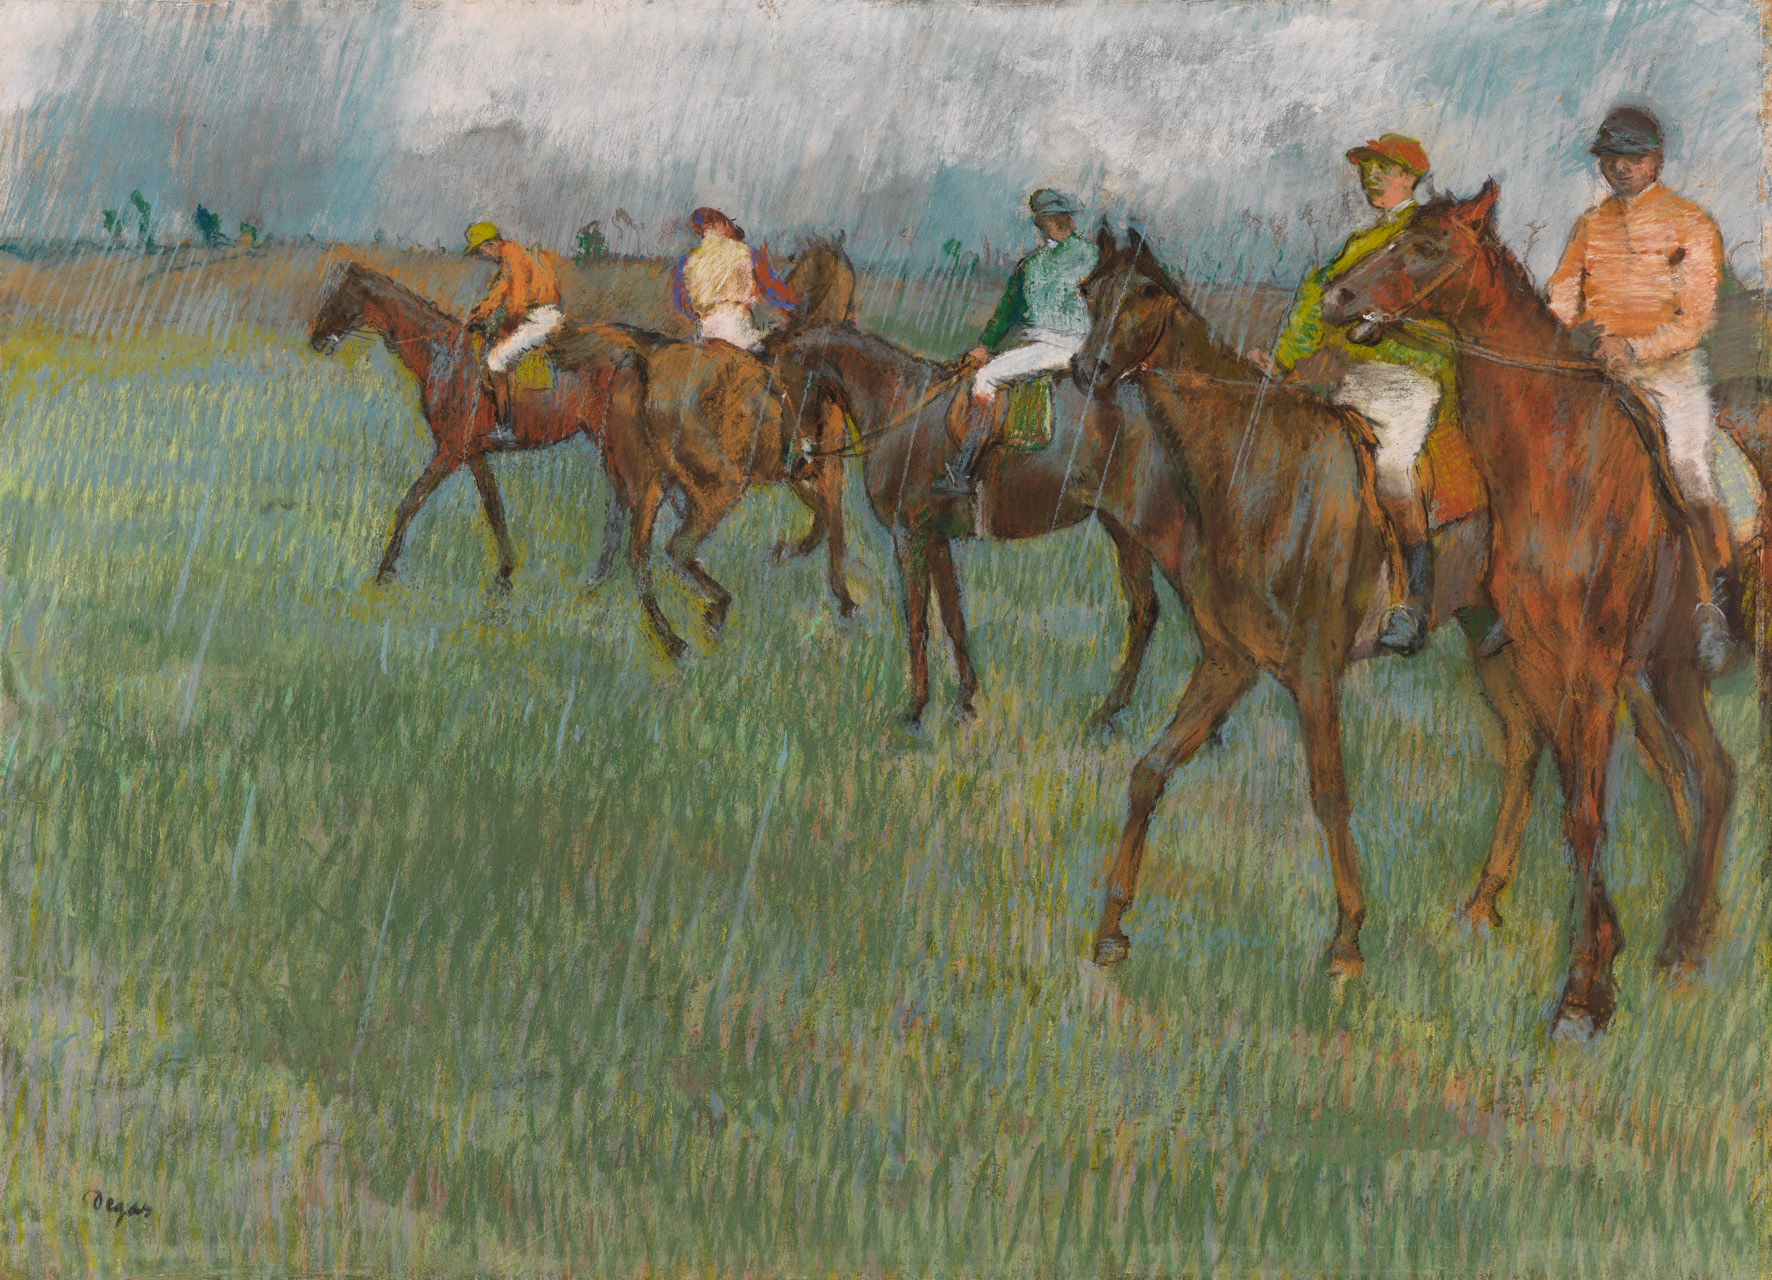 Drawn In Colour Degas From The Burrell The National Gallery Books Boots